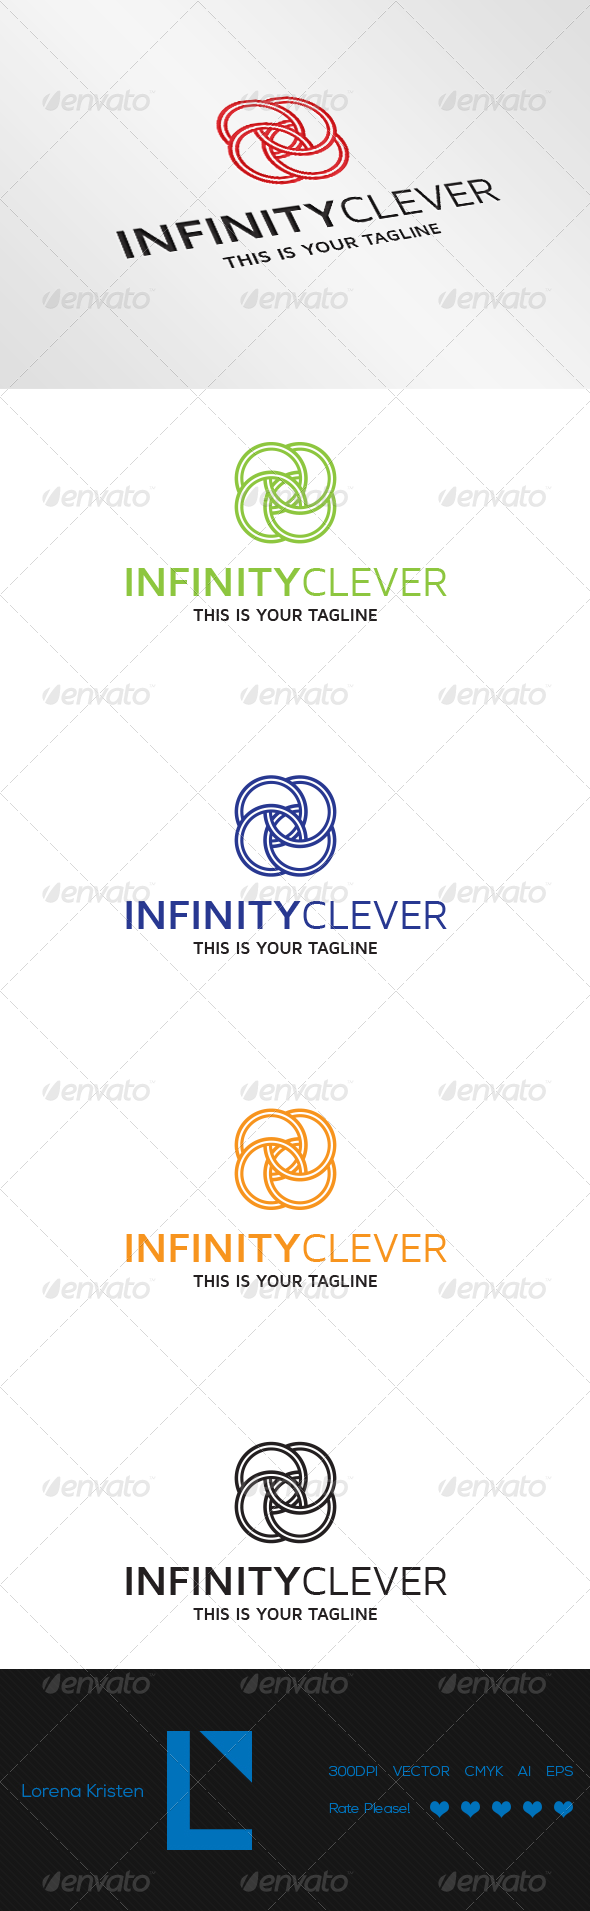 GraphicRiver Infinity Clever 7520673